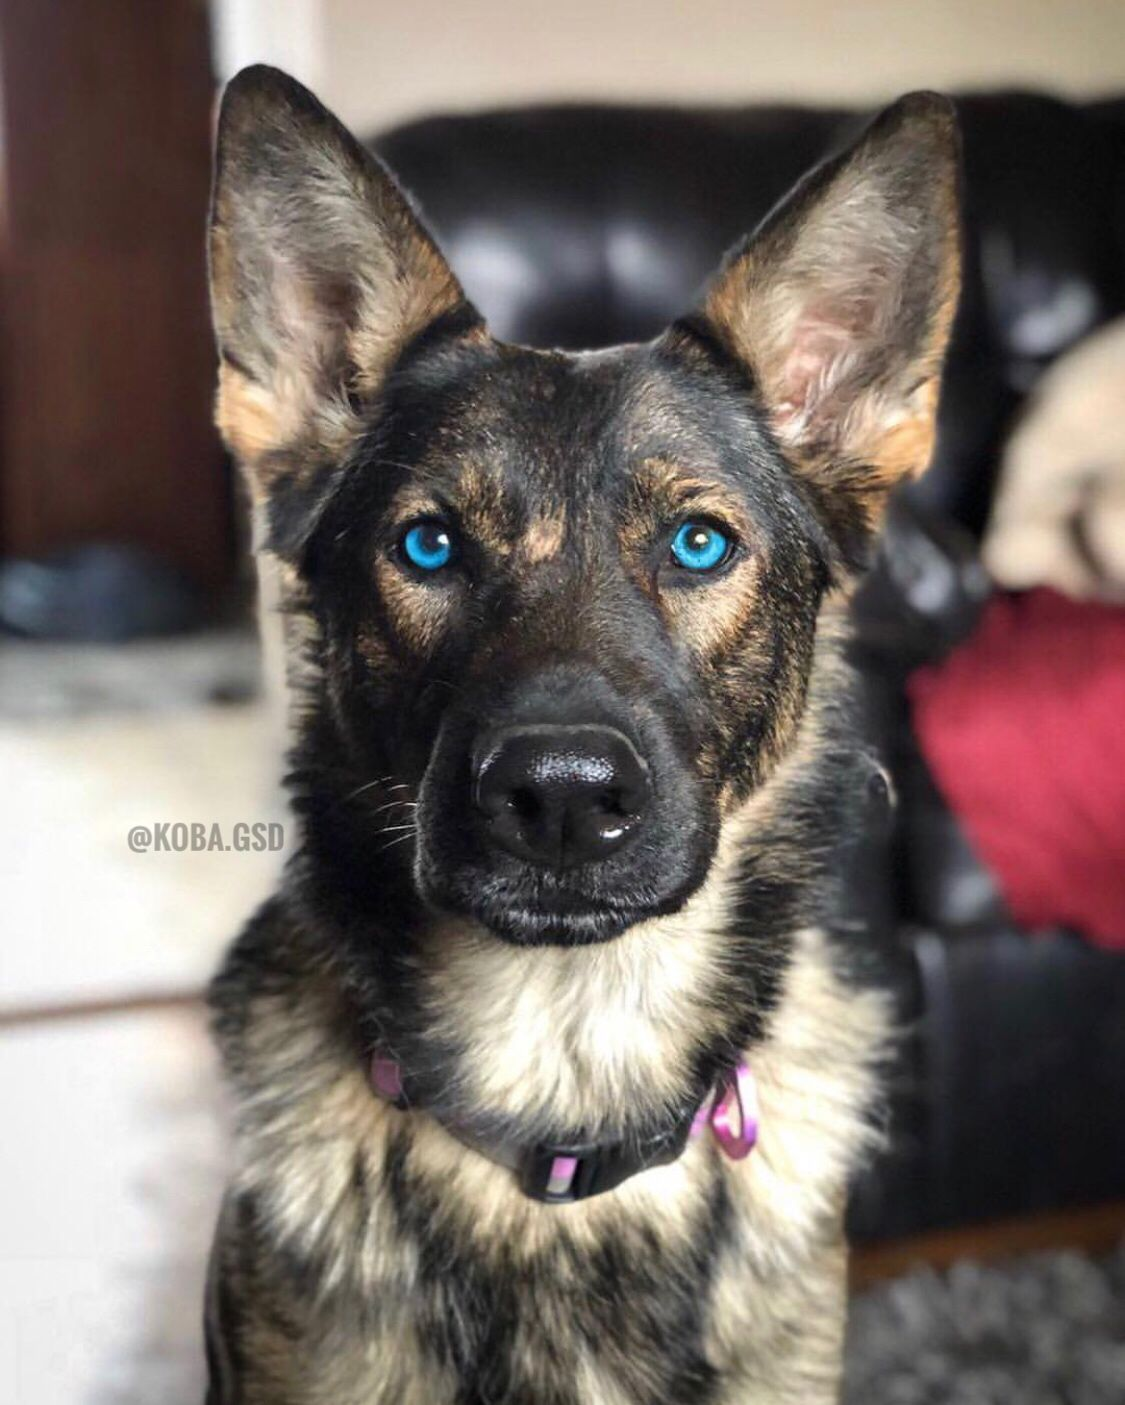 German Shepherd With Blue Eyes Dogpictures Dogs Aww Cuteanimals Dogsoftwitter Dog Cute German Shepherd Puppies German Shepherd Dogs Blue Eyed Dog